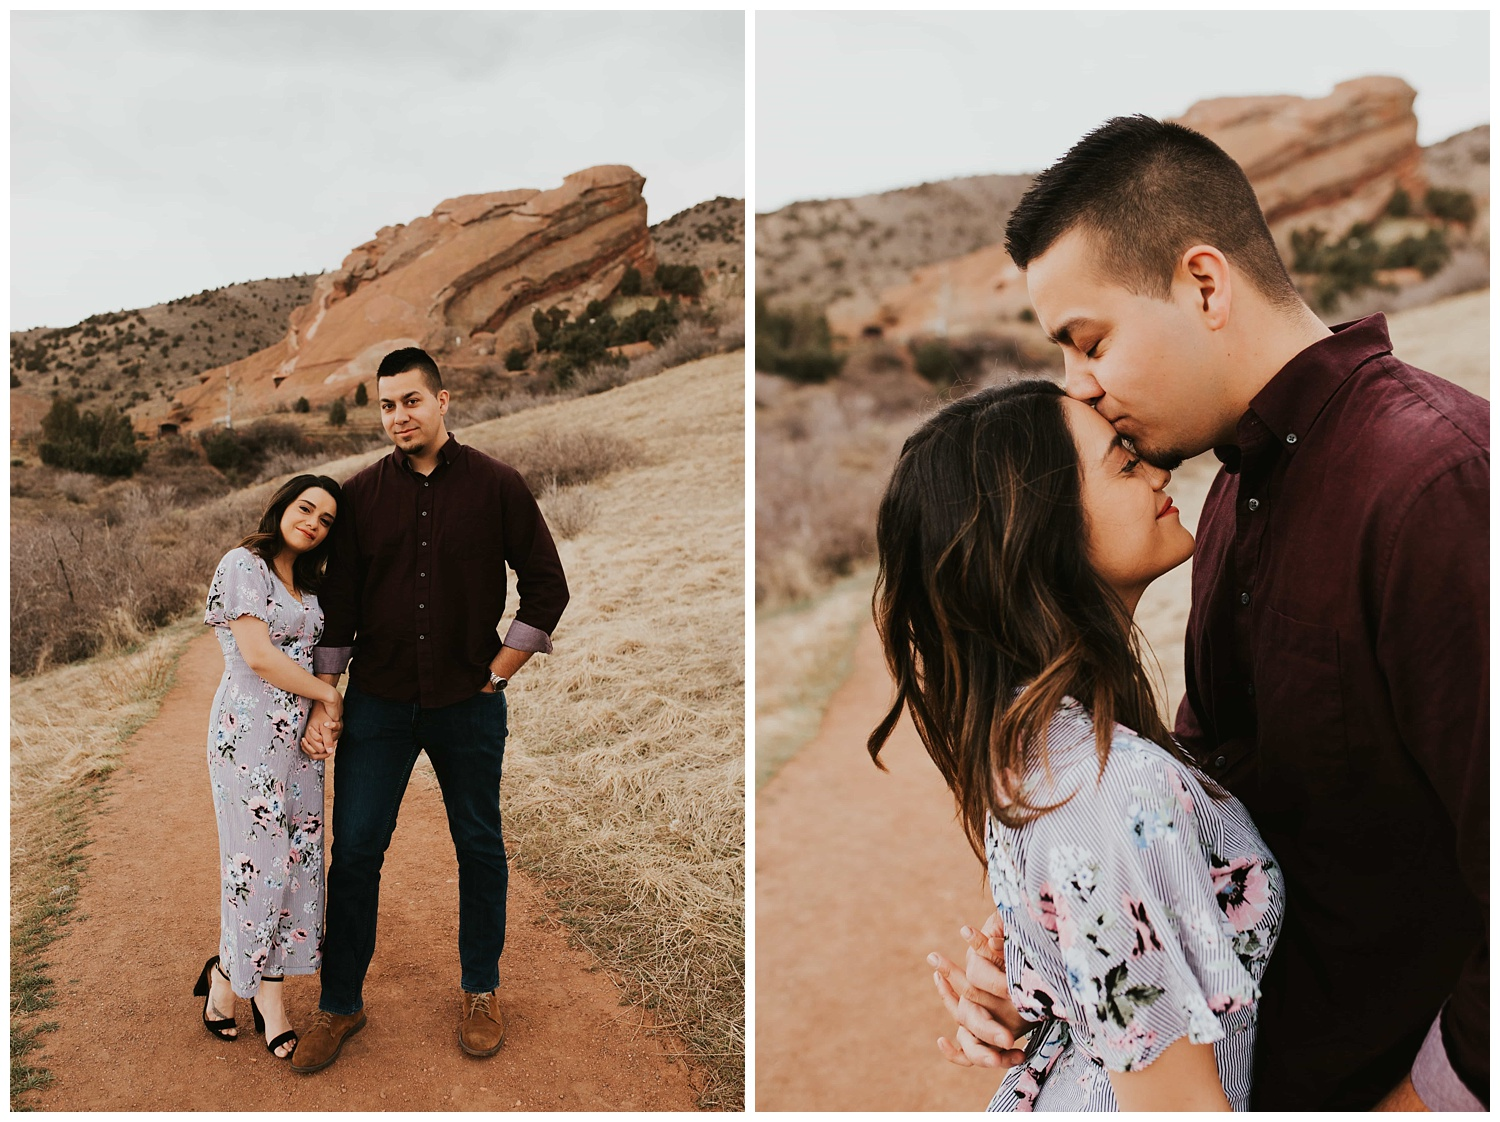 Meredith_Soy_Photography_Red_Rocks_Photographer_0016.jpg